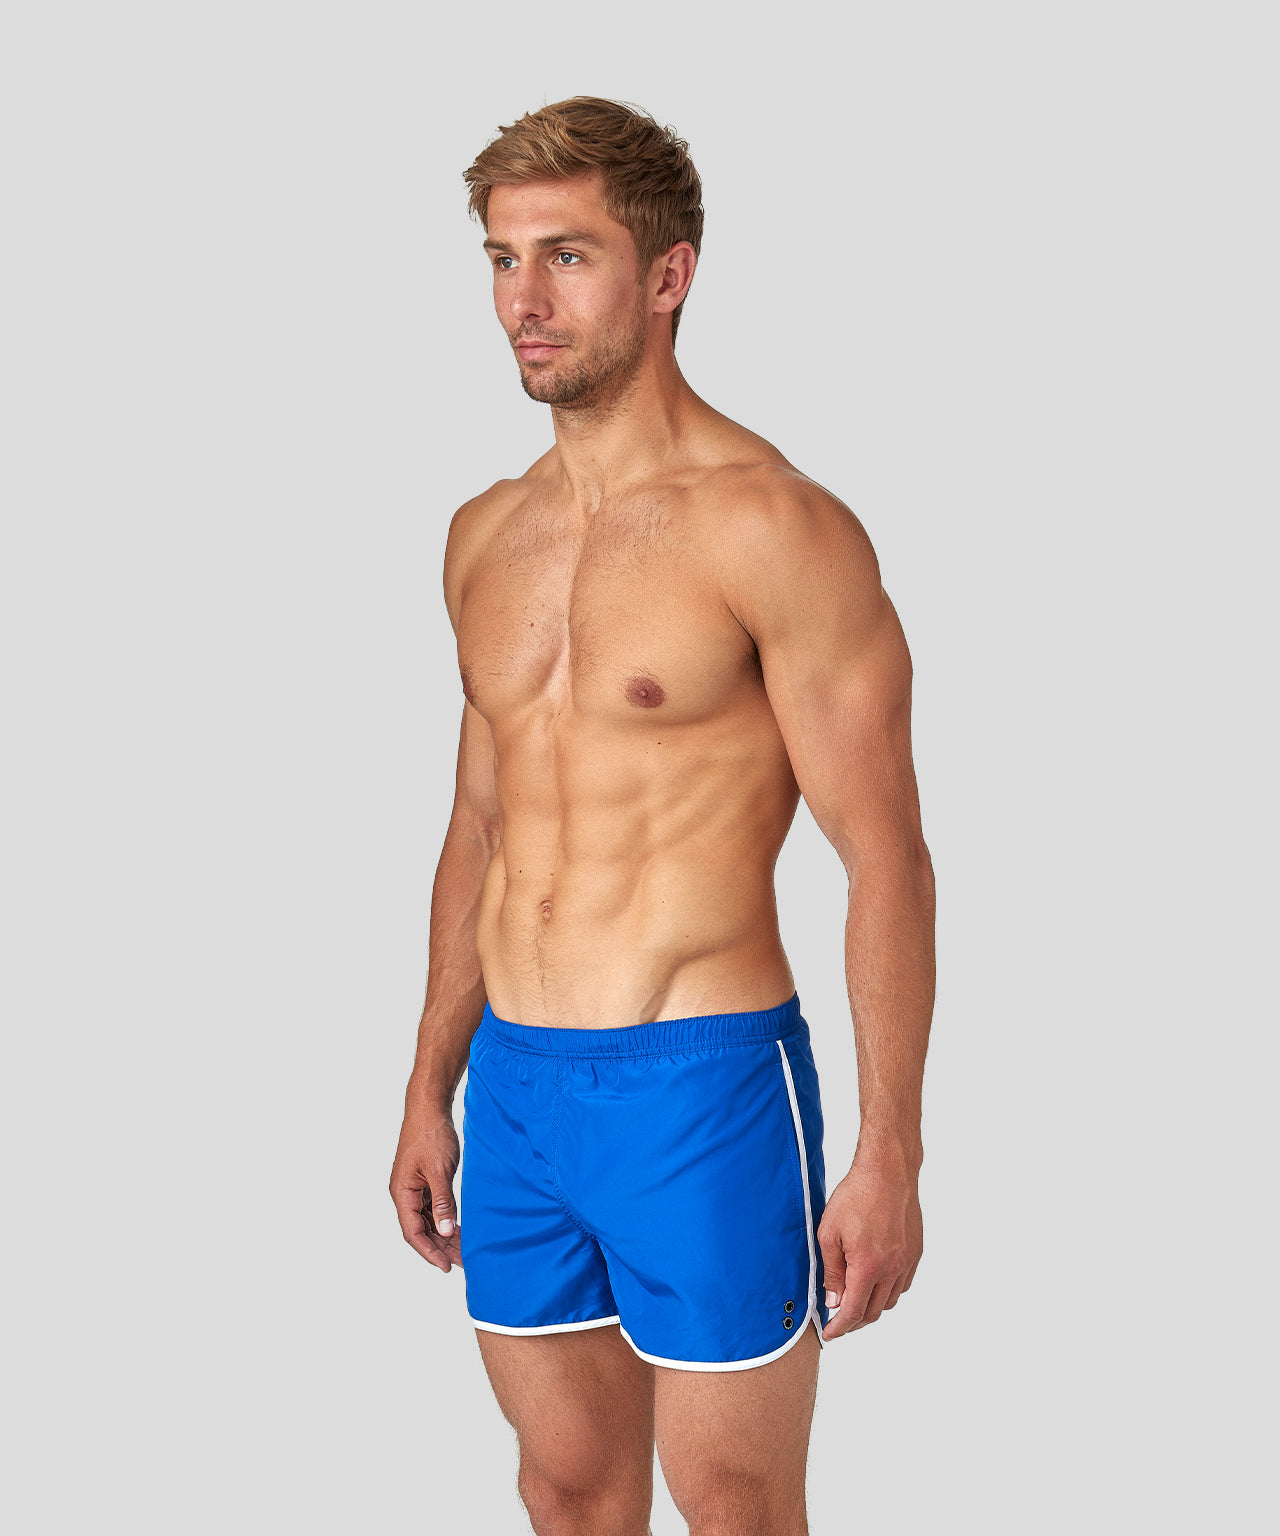 Marathon Swim Shorts - klein blue/white